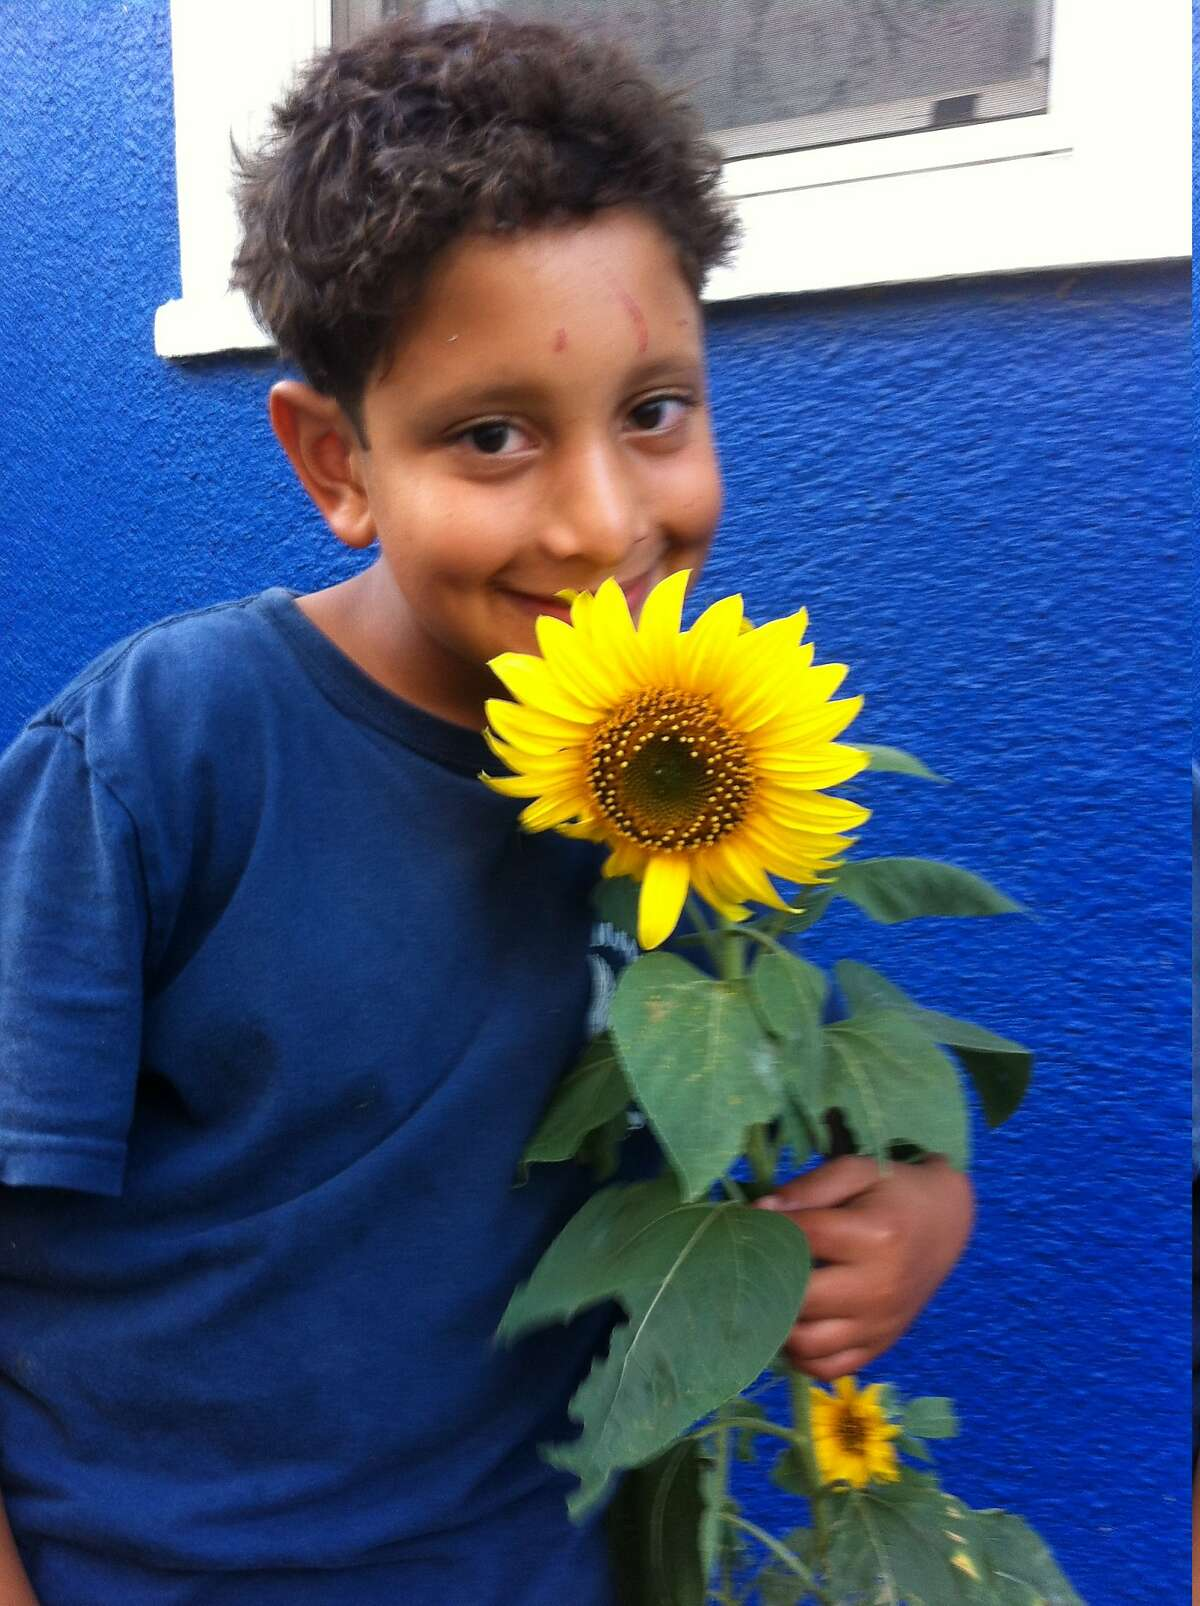 Aidan Fisher-Paulson poses with a sunflower he planted in the Bedlam Blue Bungalow.